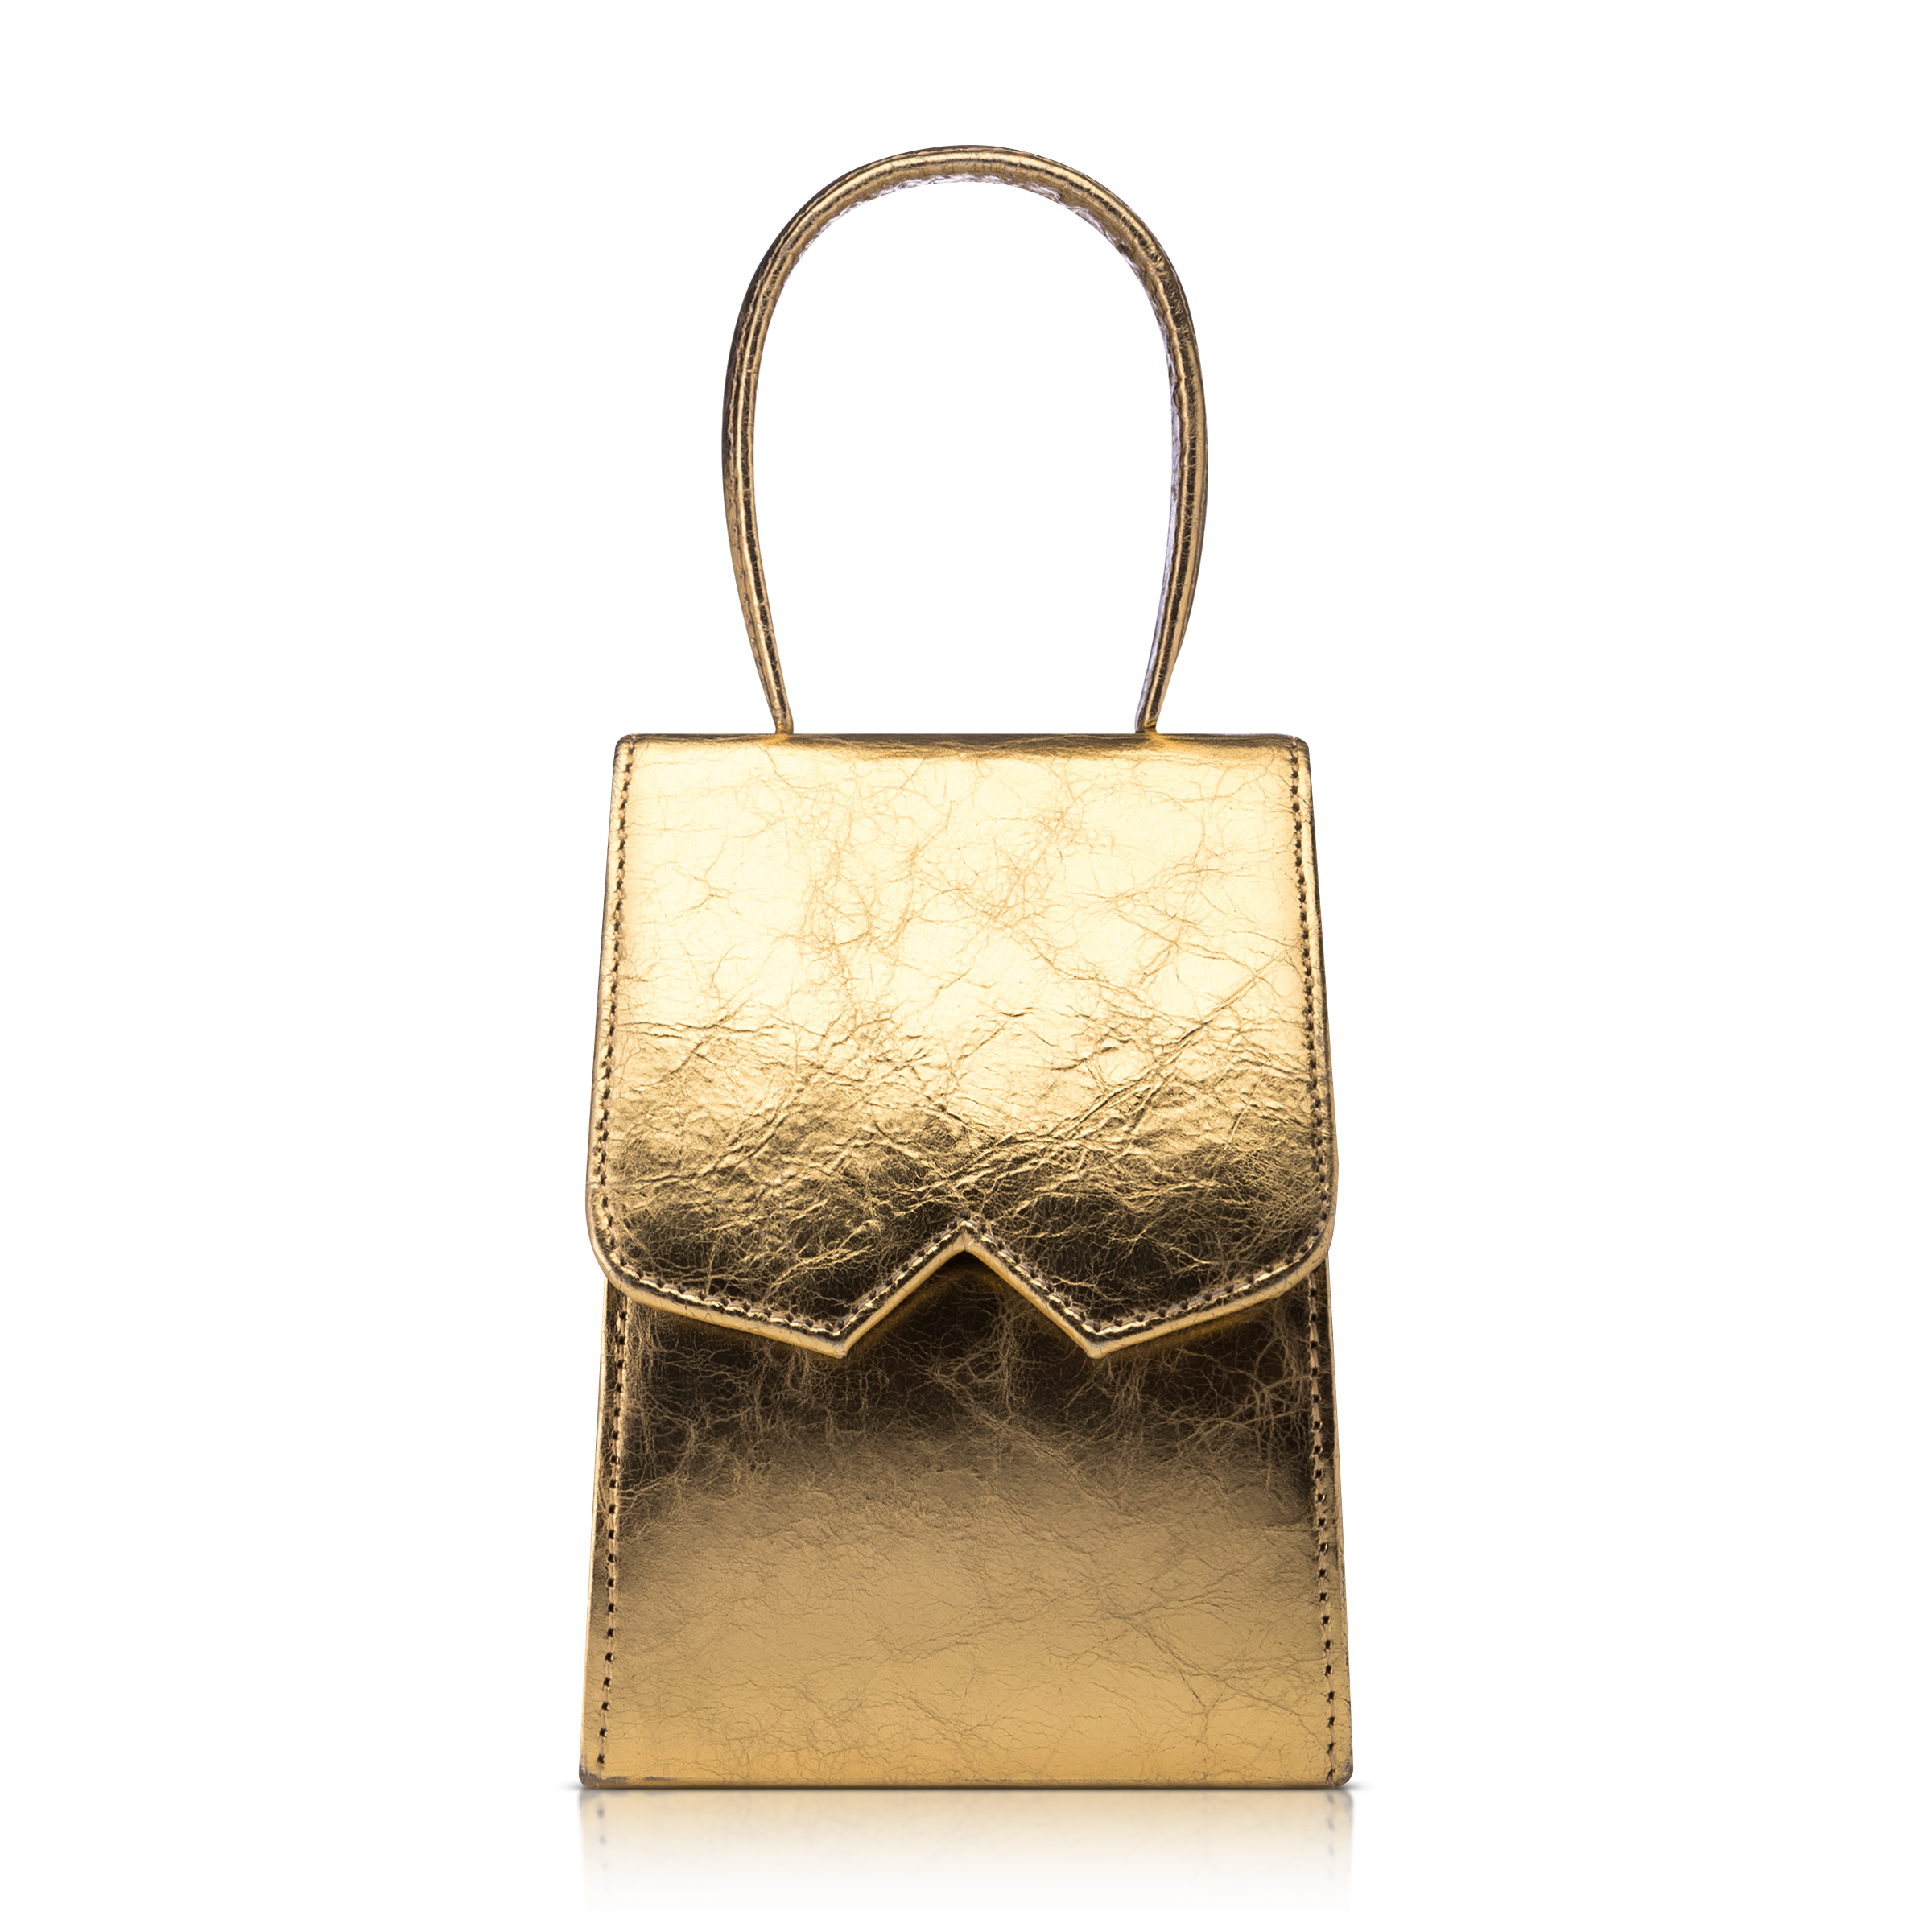 golden bag product photography